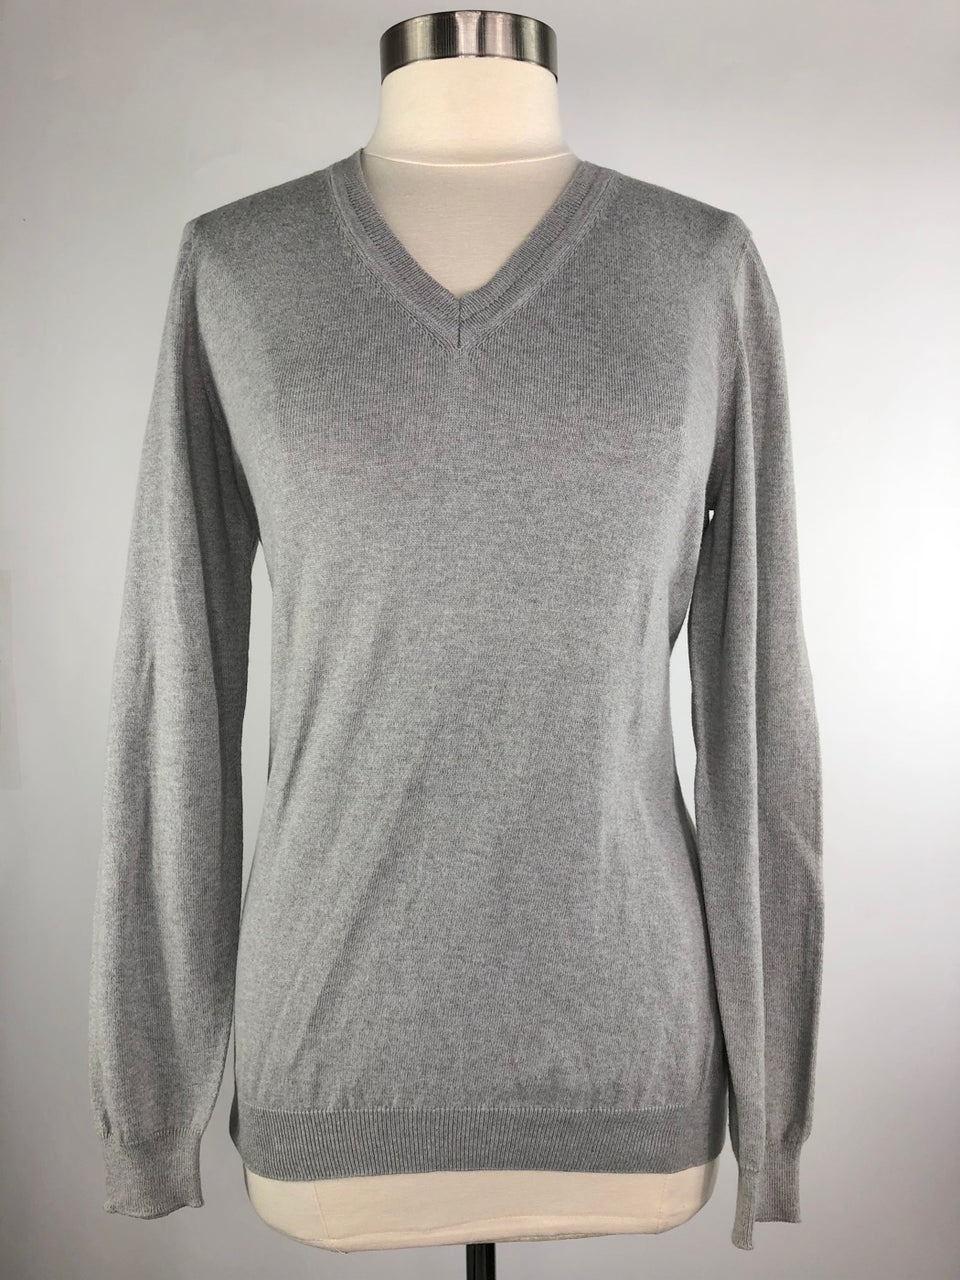 Callidae V-Neck Sweater in Aldgate - Women's XS